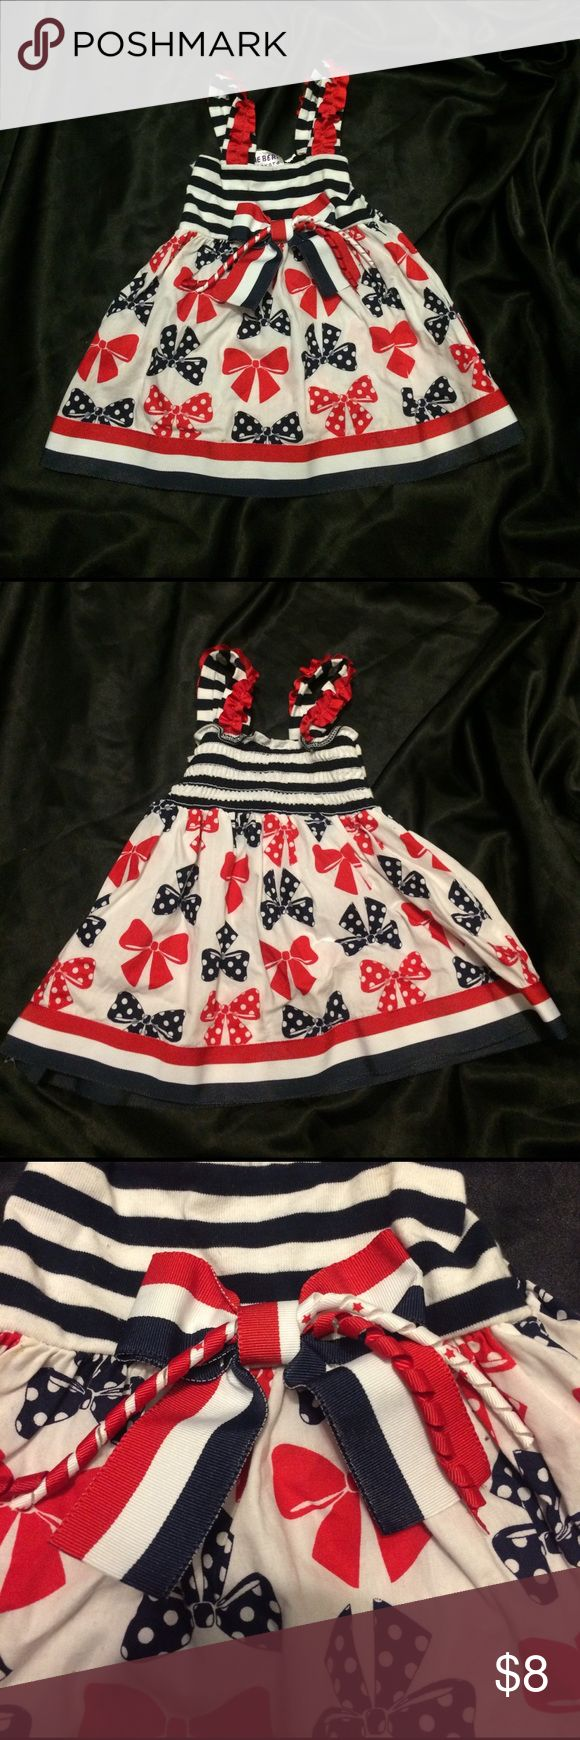 Patriotic dress Red white and blue bow and ribbon detail dress. Super cute for the 4th of July! Worn once. In great condition. Smoke free home Blueberi Boulevard Dresses Casual